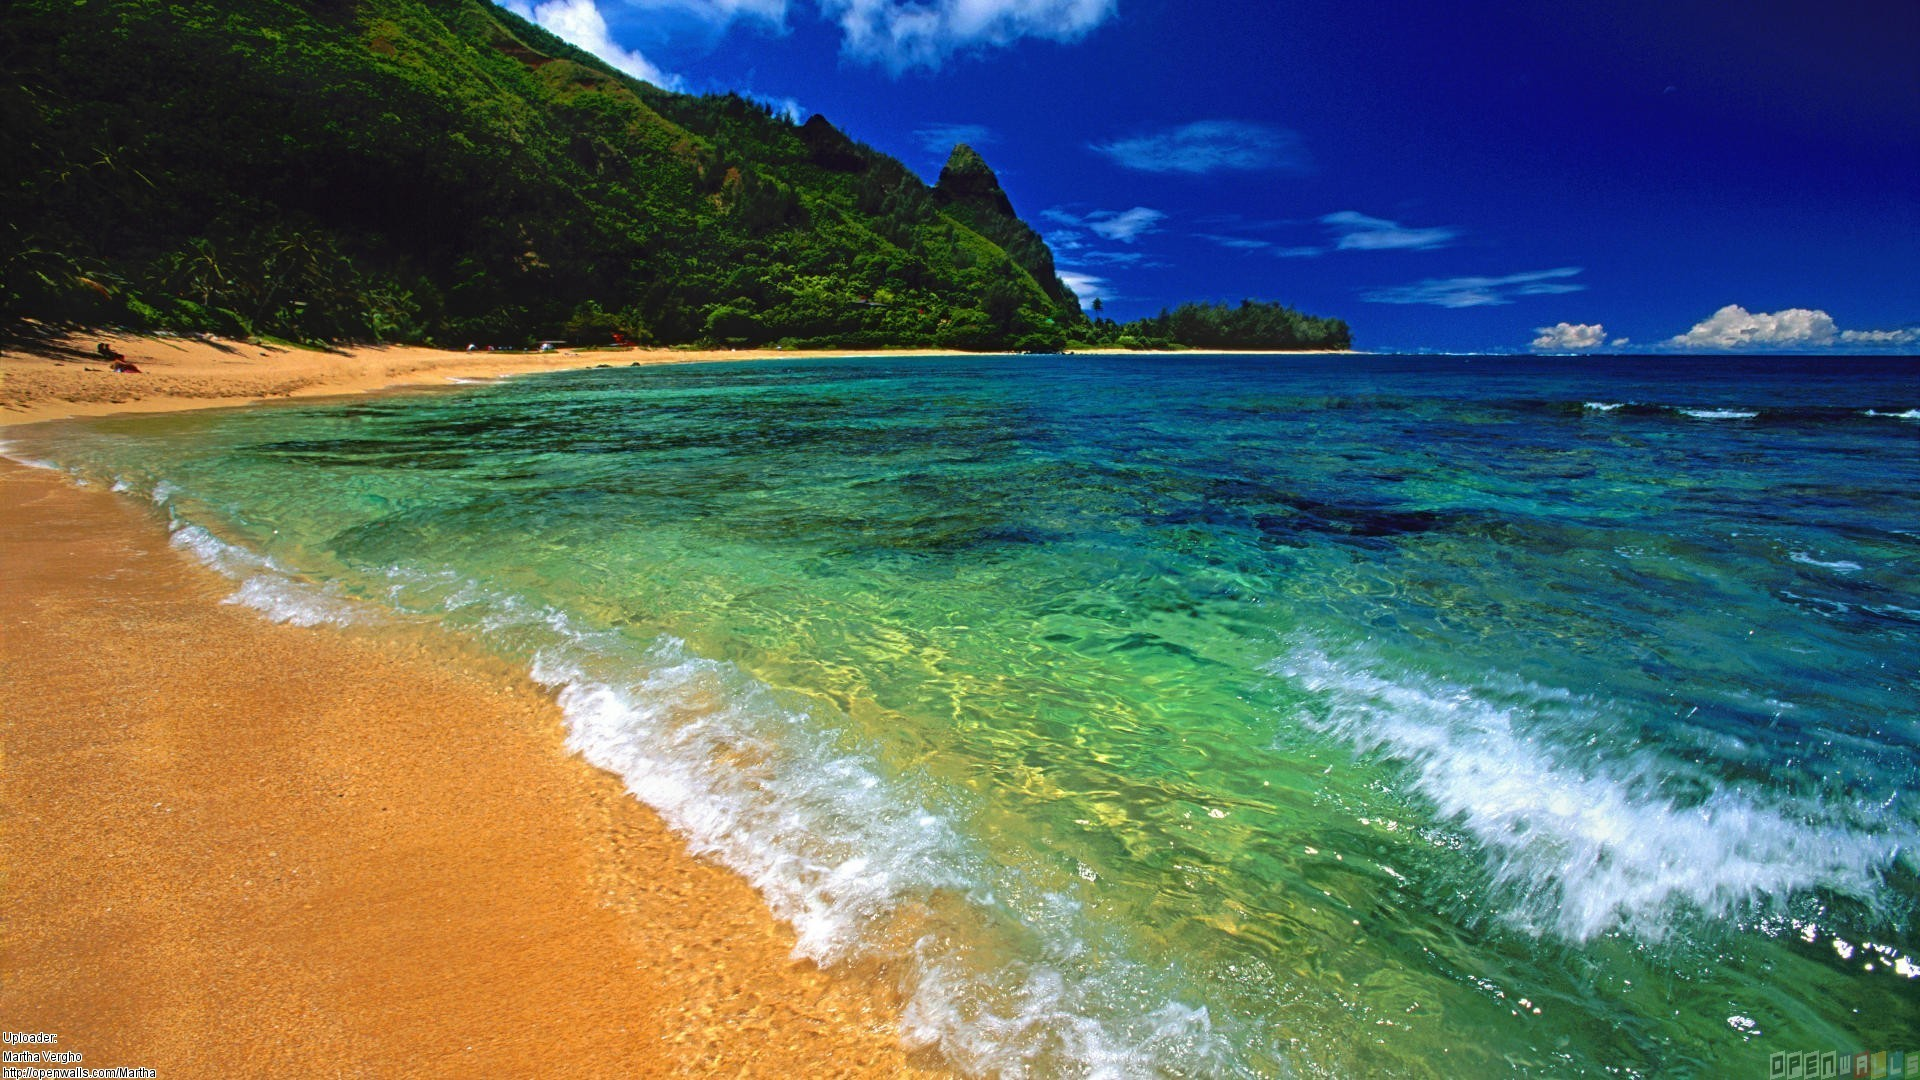 1920x1080 Hawaii Beach Island Hd Wallpaper Beraplancom px